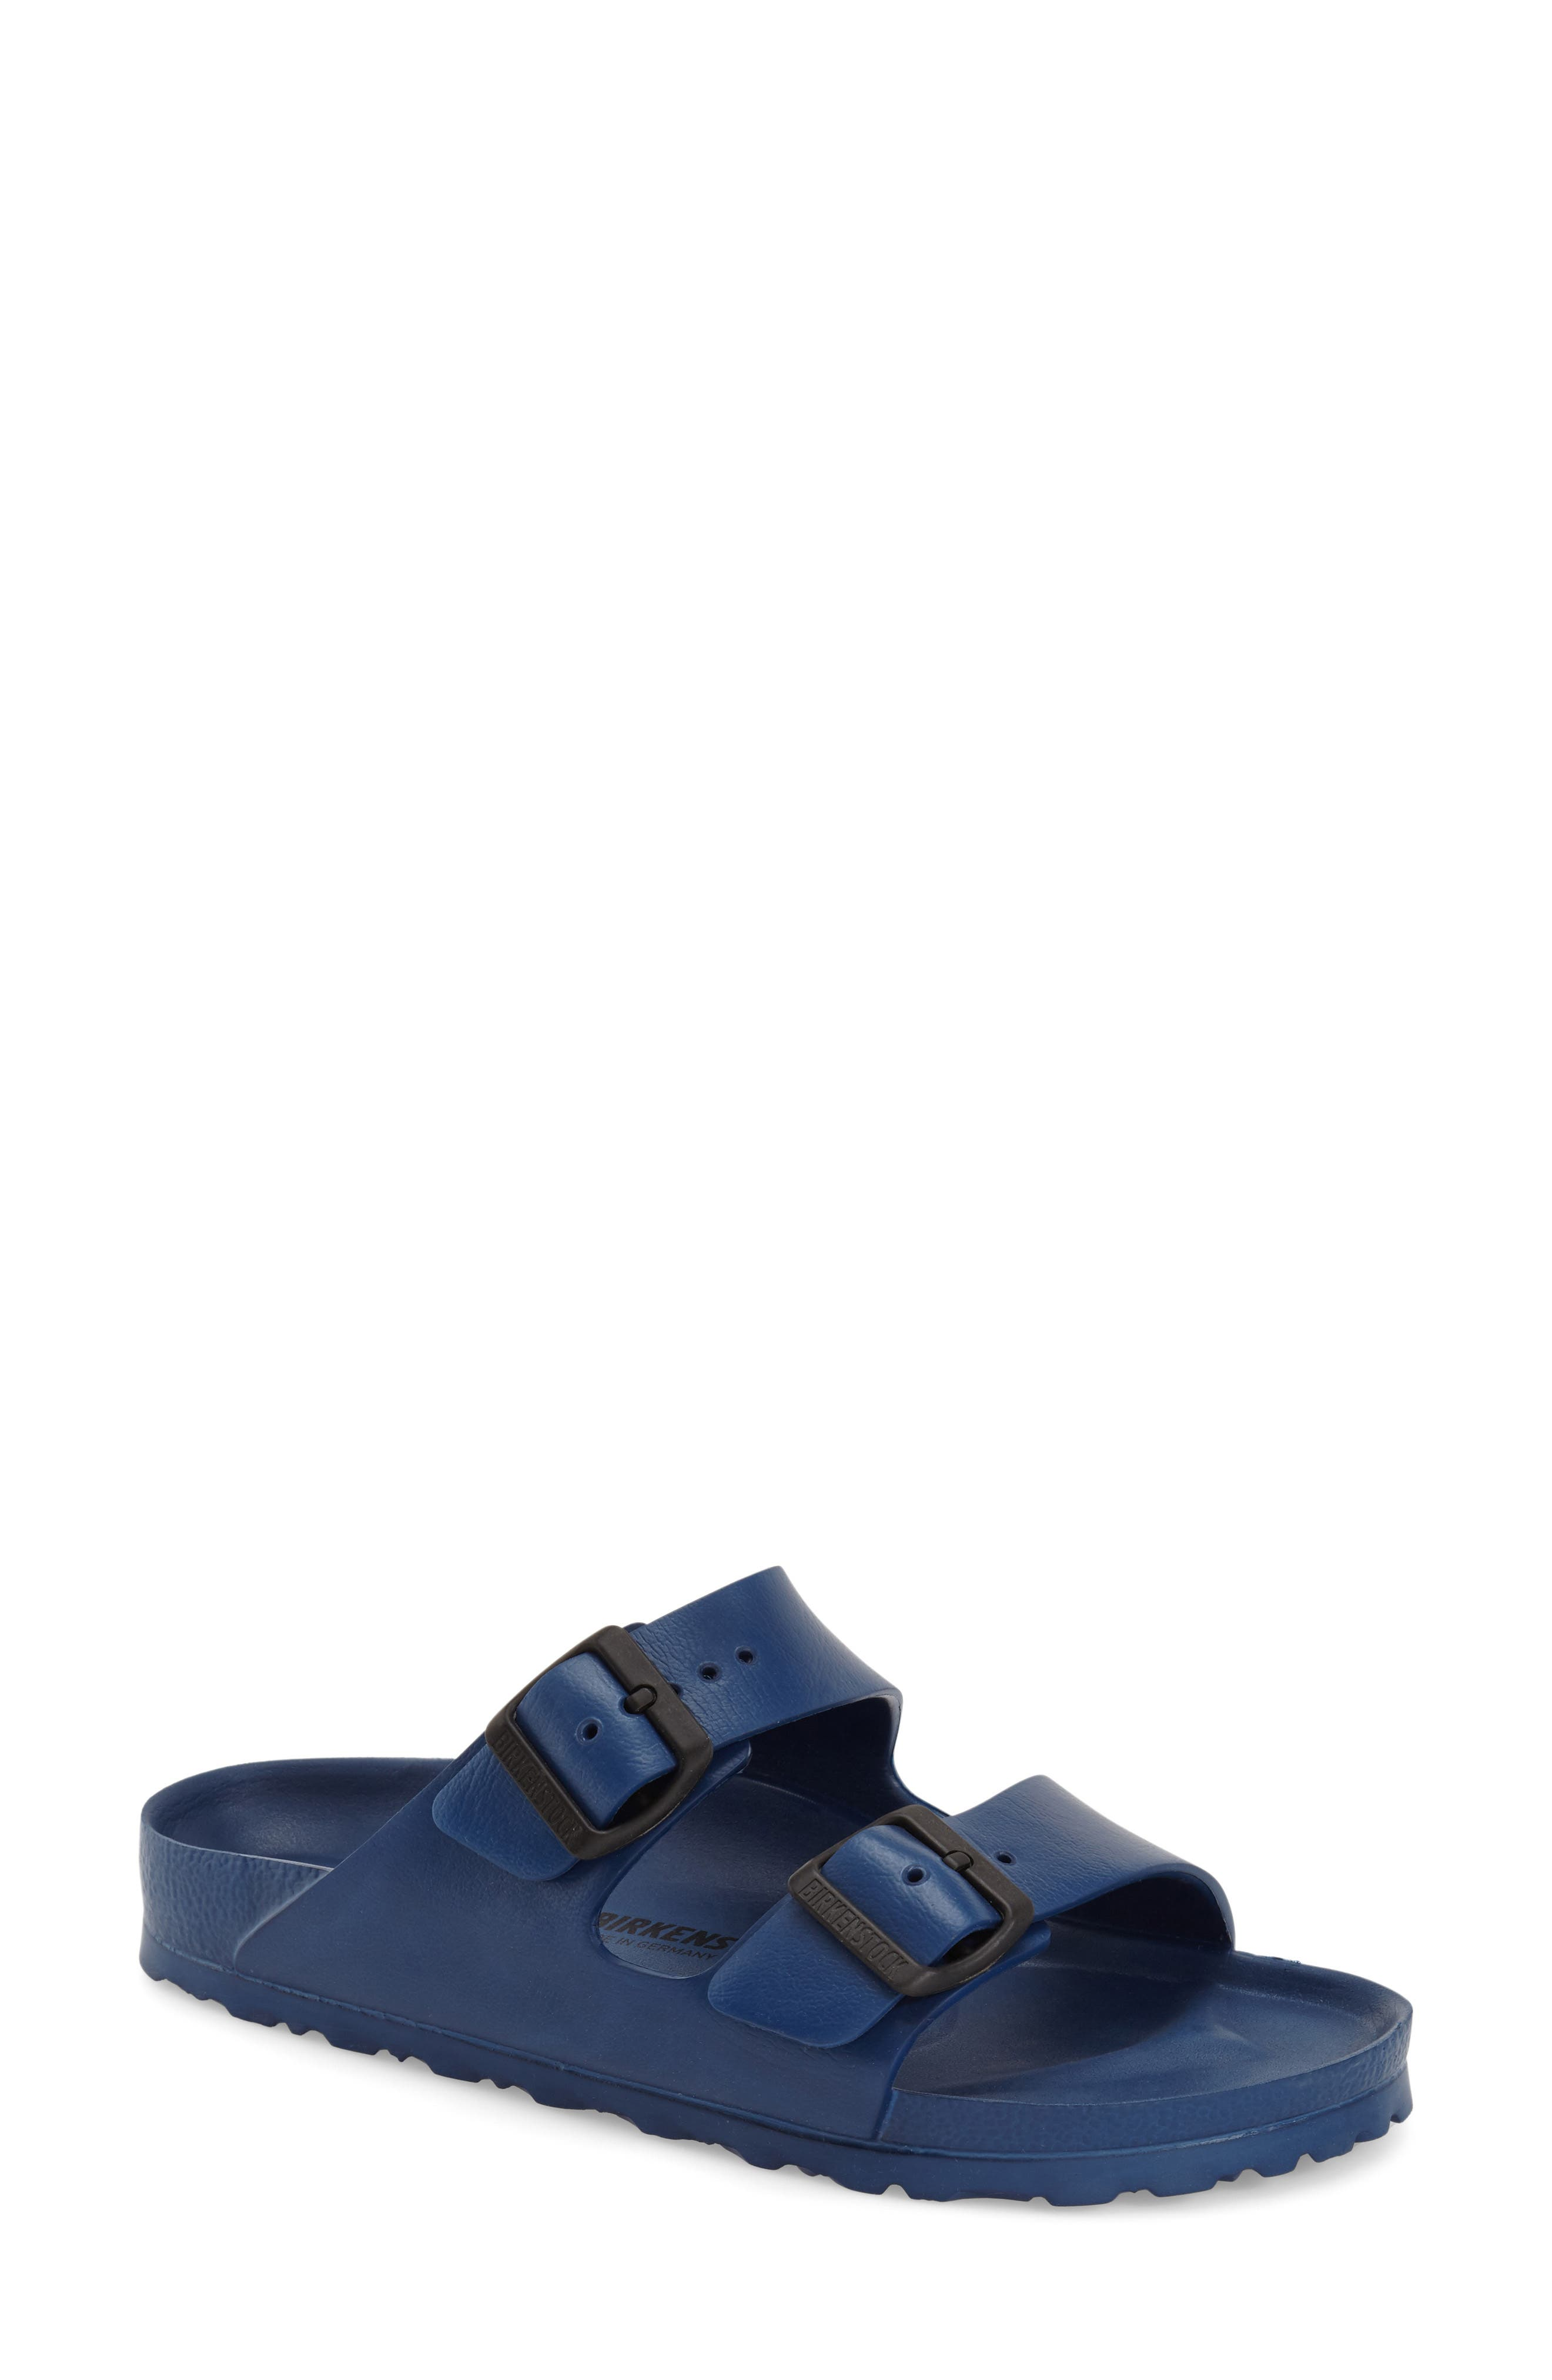 Essentials - Arizona Slide Sandal,                         Main,                         color, NAVY EVA